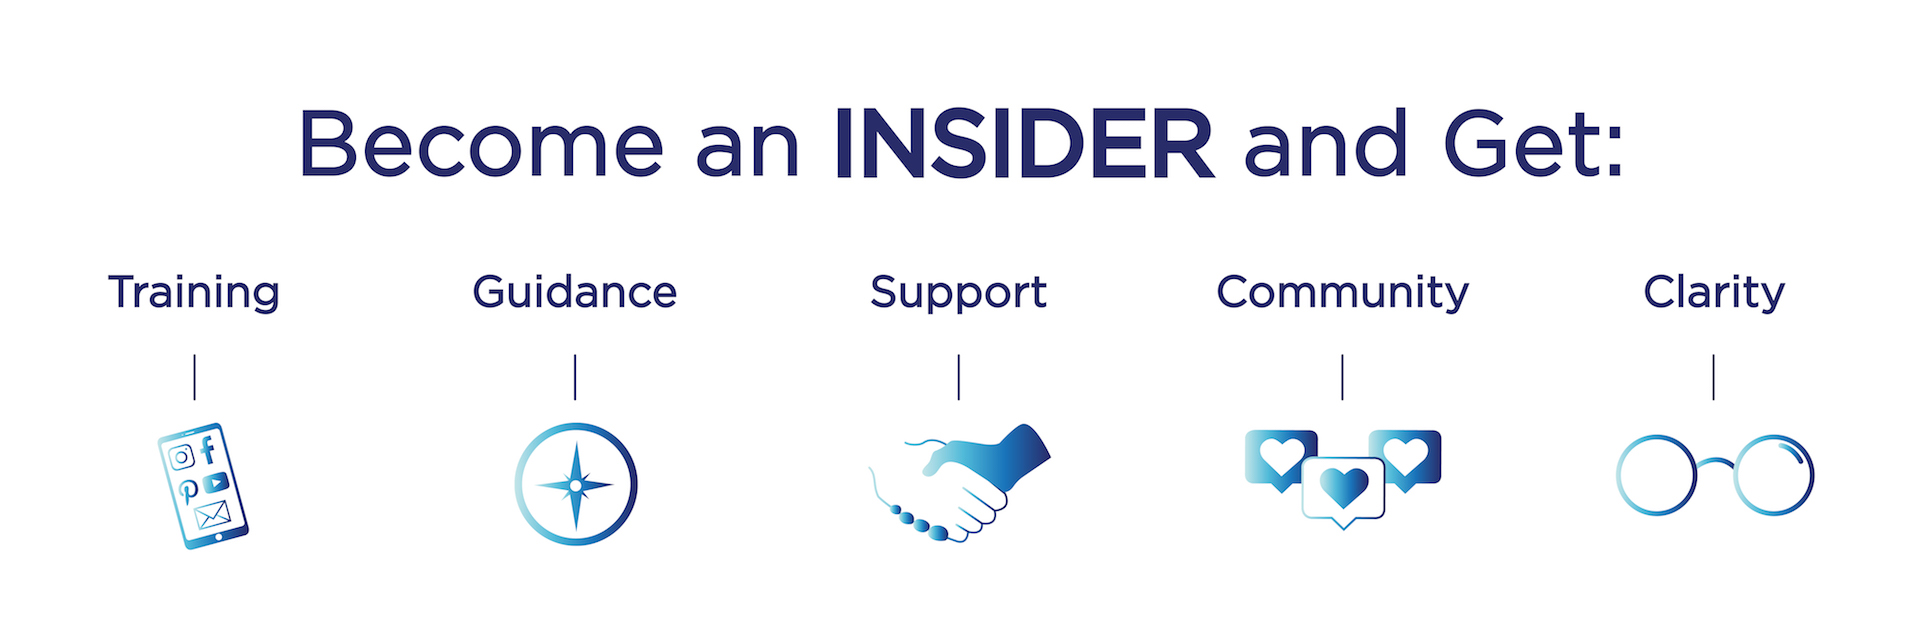 Become an Insider and Get - 1